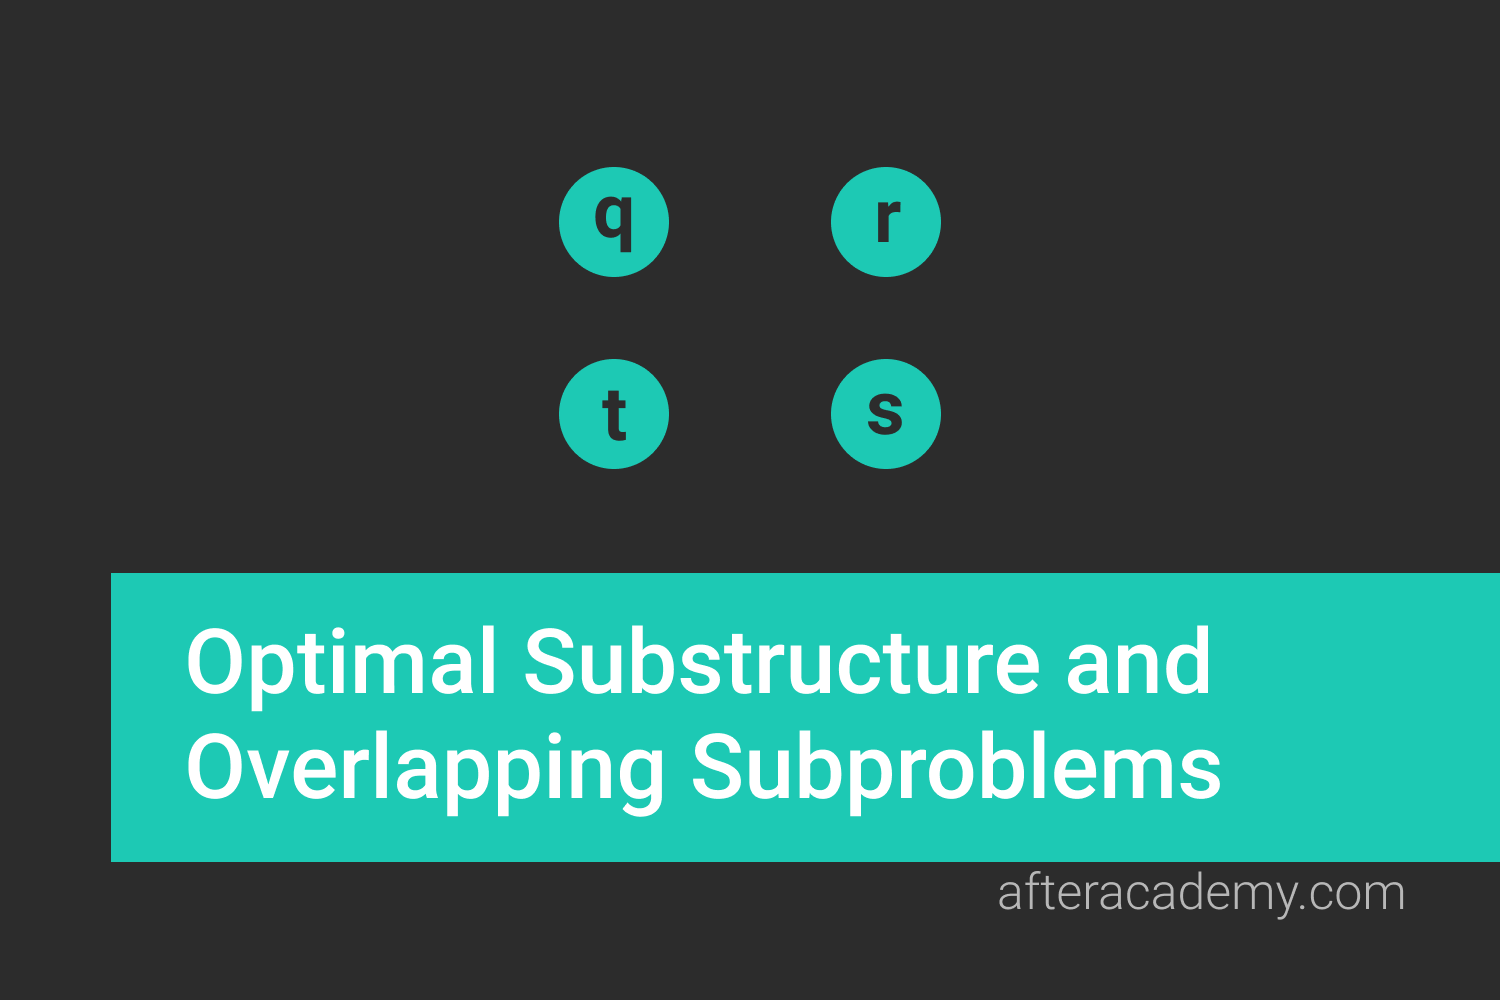 Optimal Substructure and Overlapping Subproblems